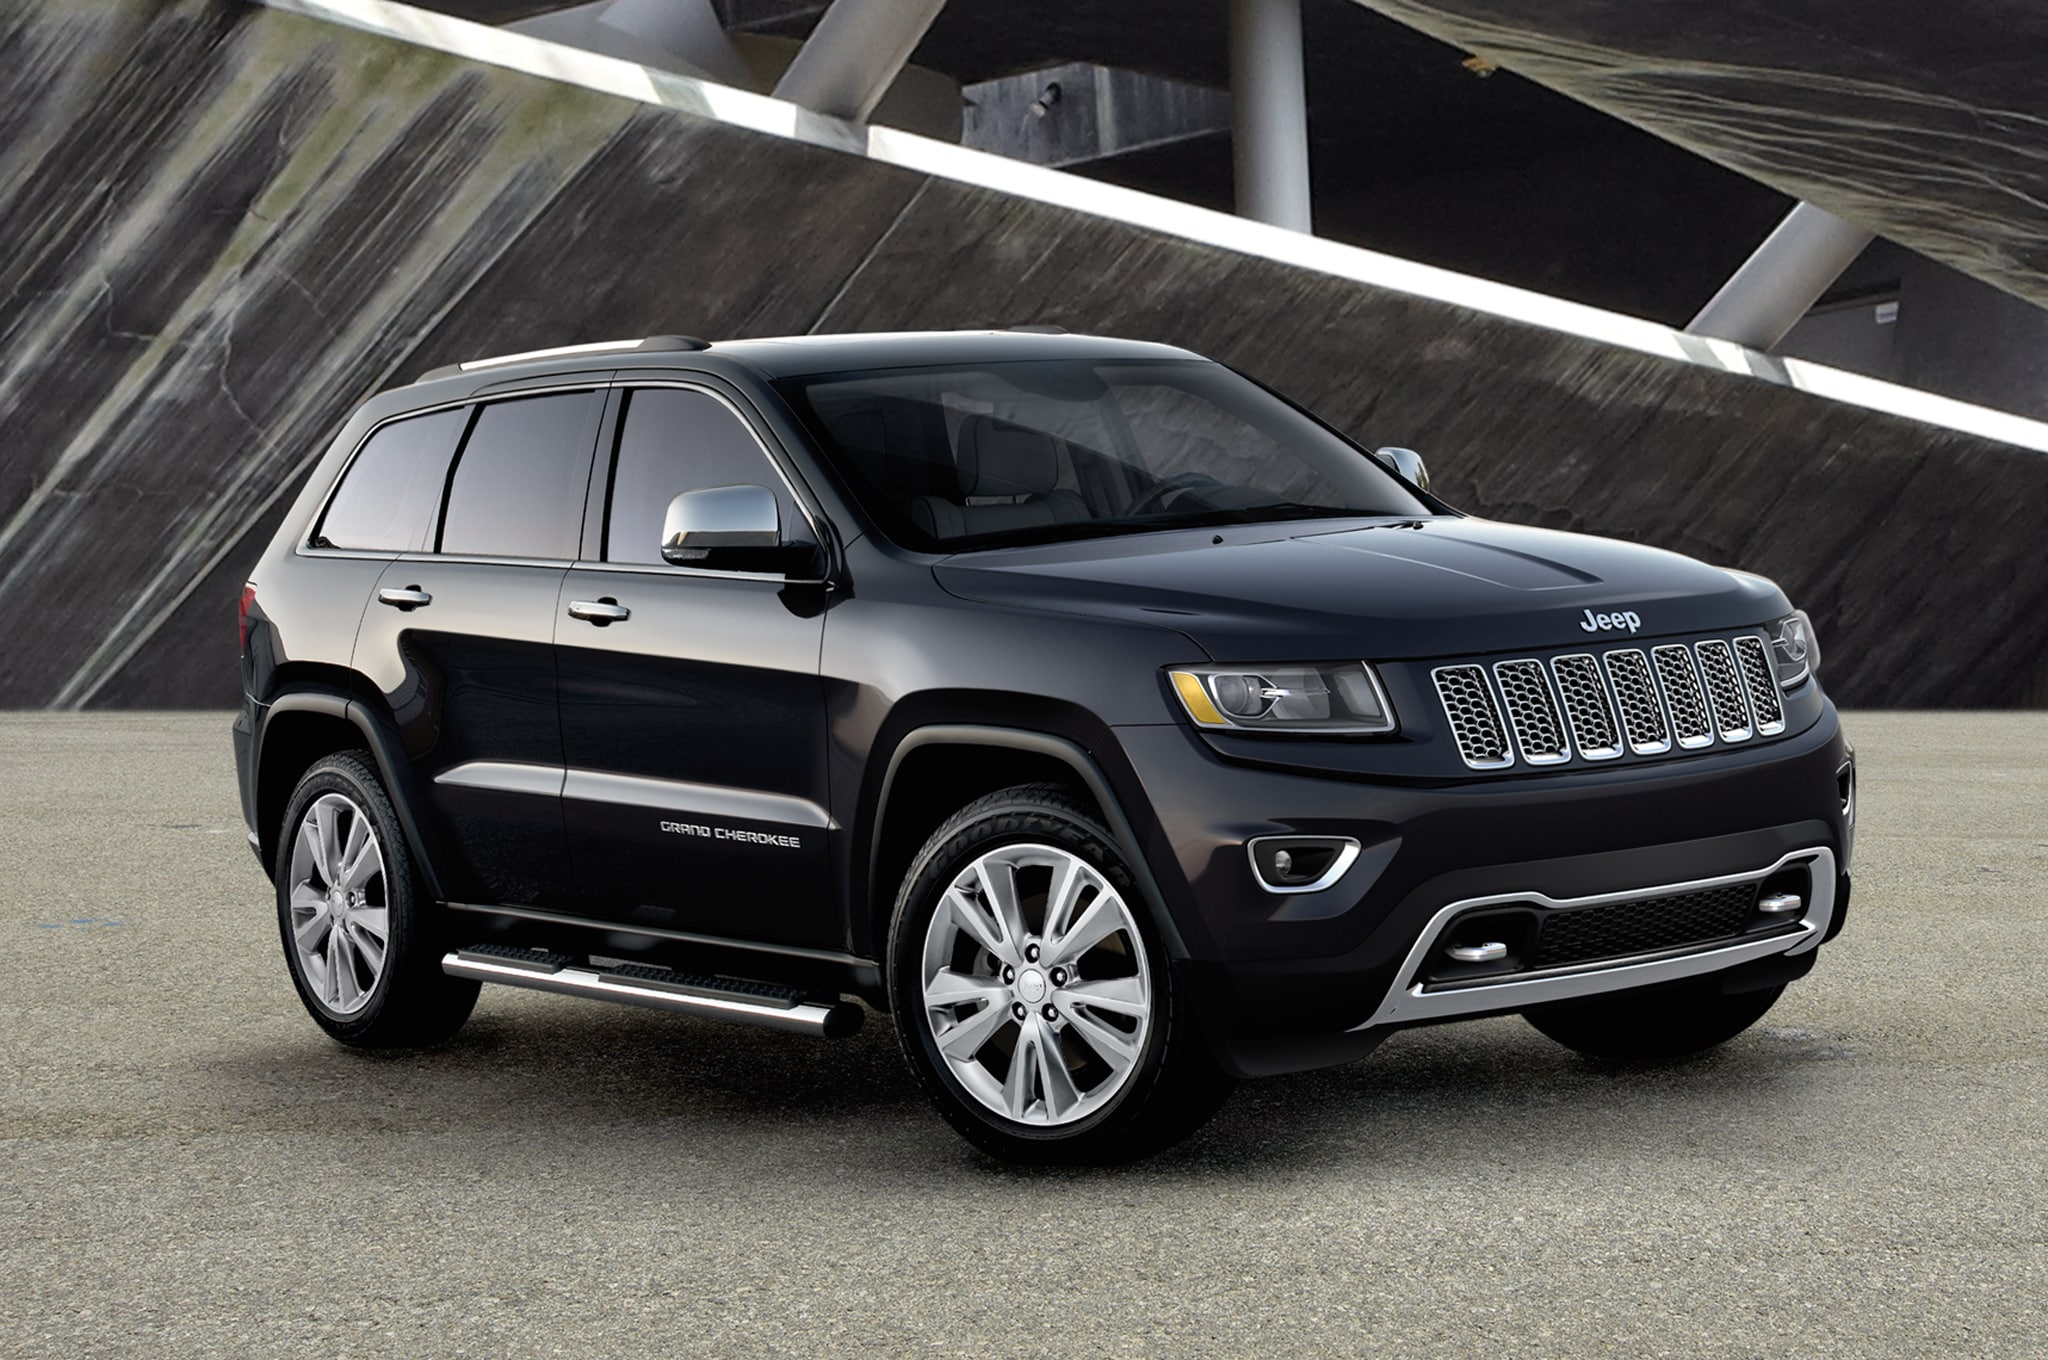 ny 2014 grand cherokee new york jeep dealer long island smithtown. Black Bedroom Furniture Sets. Home Design Ideas